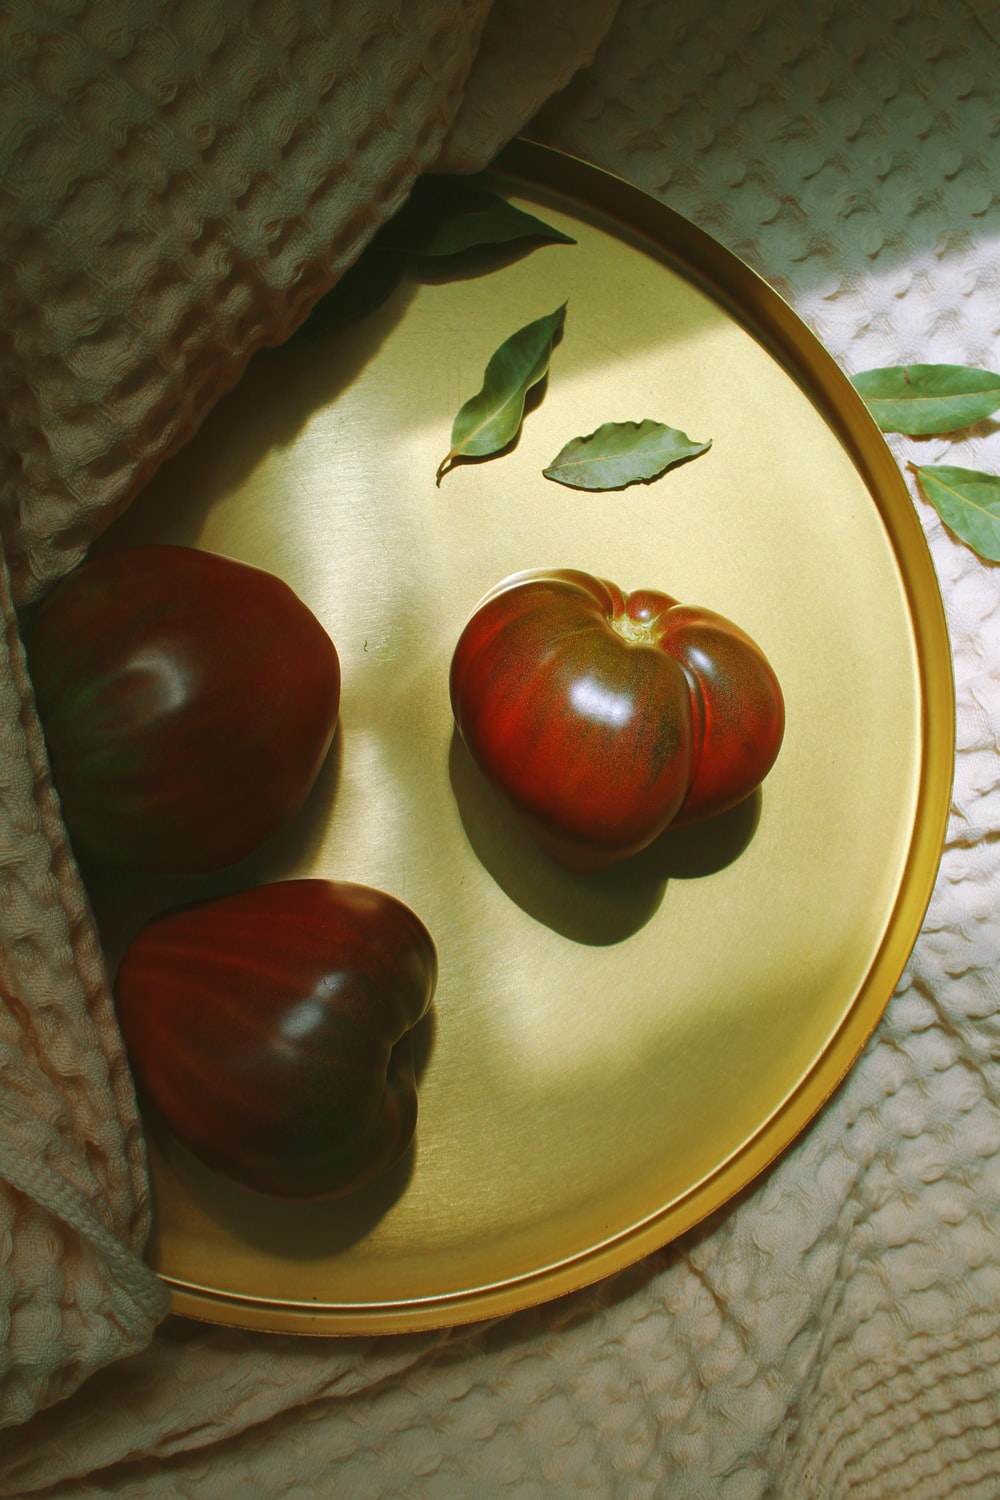 three red tomatoes on a gold tray